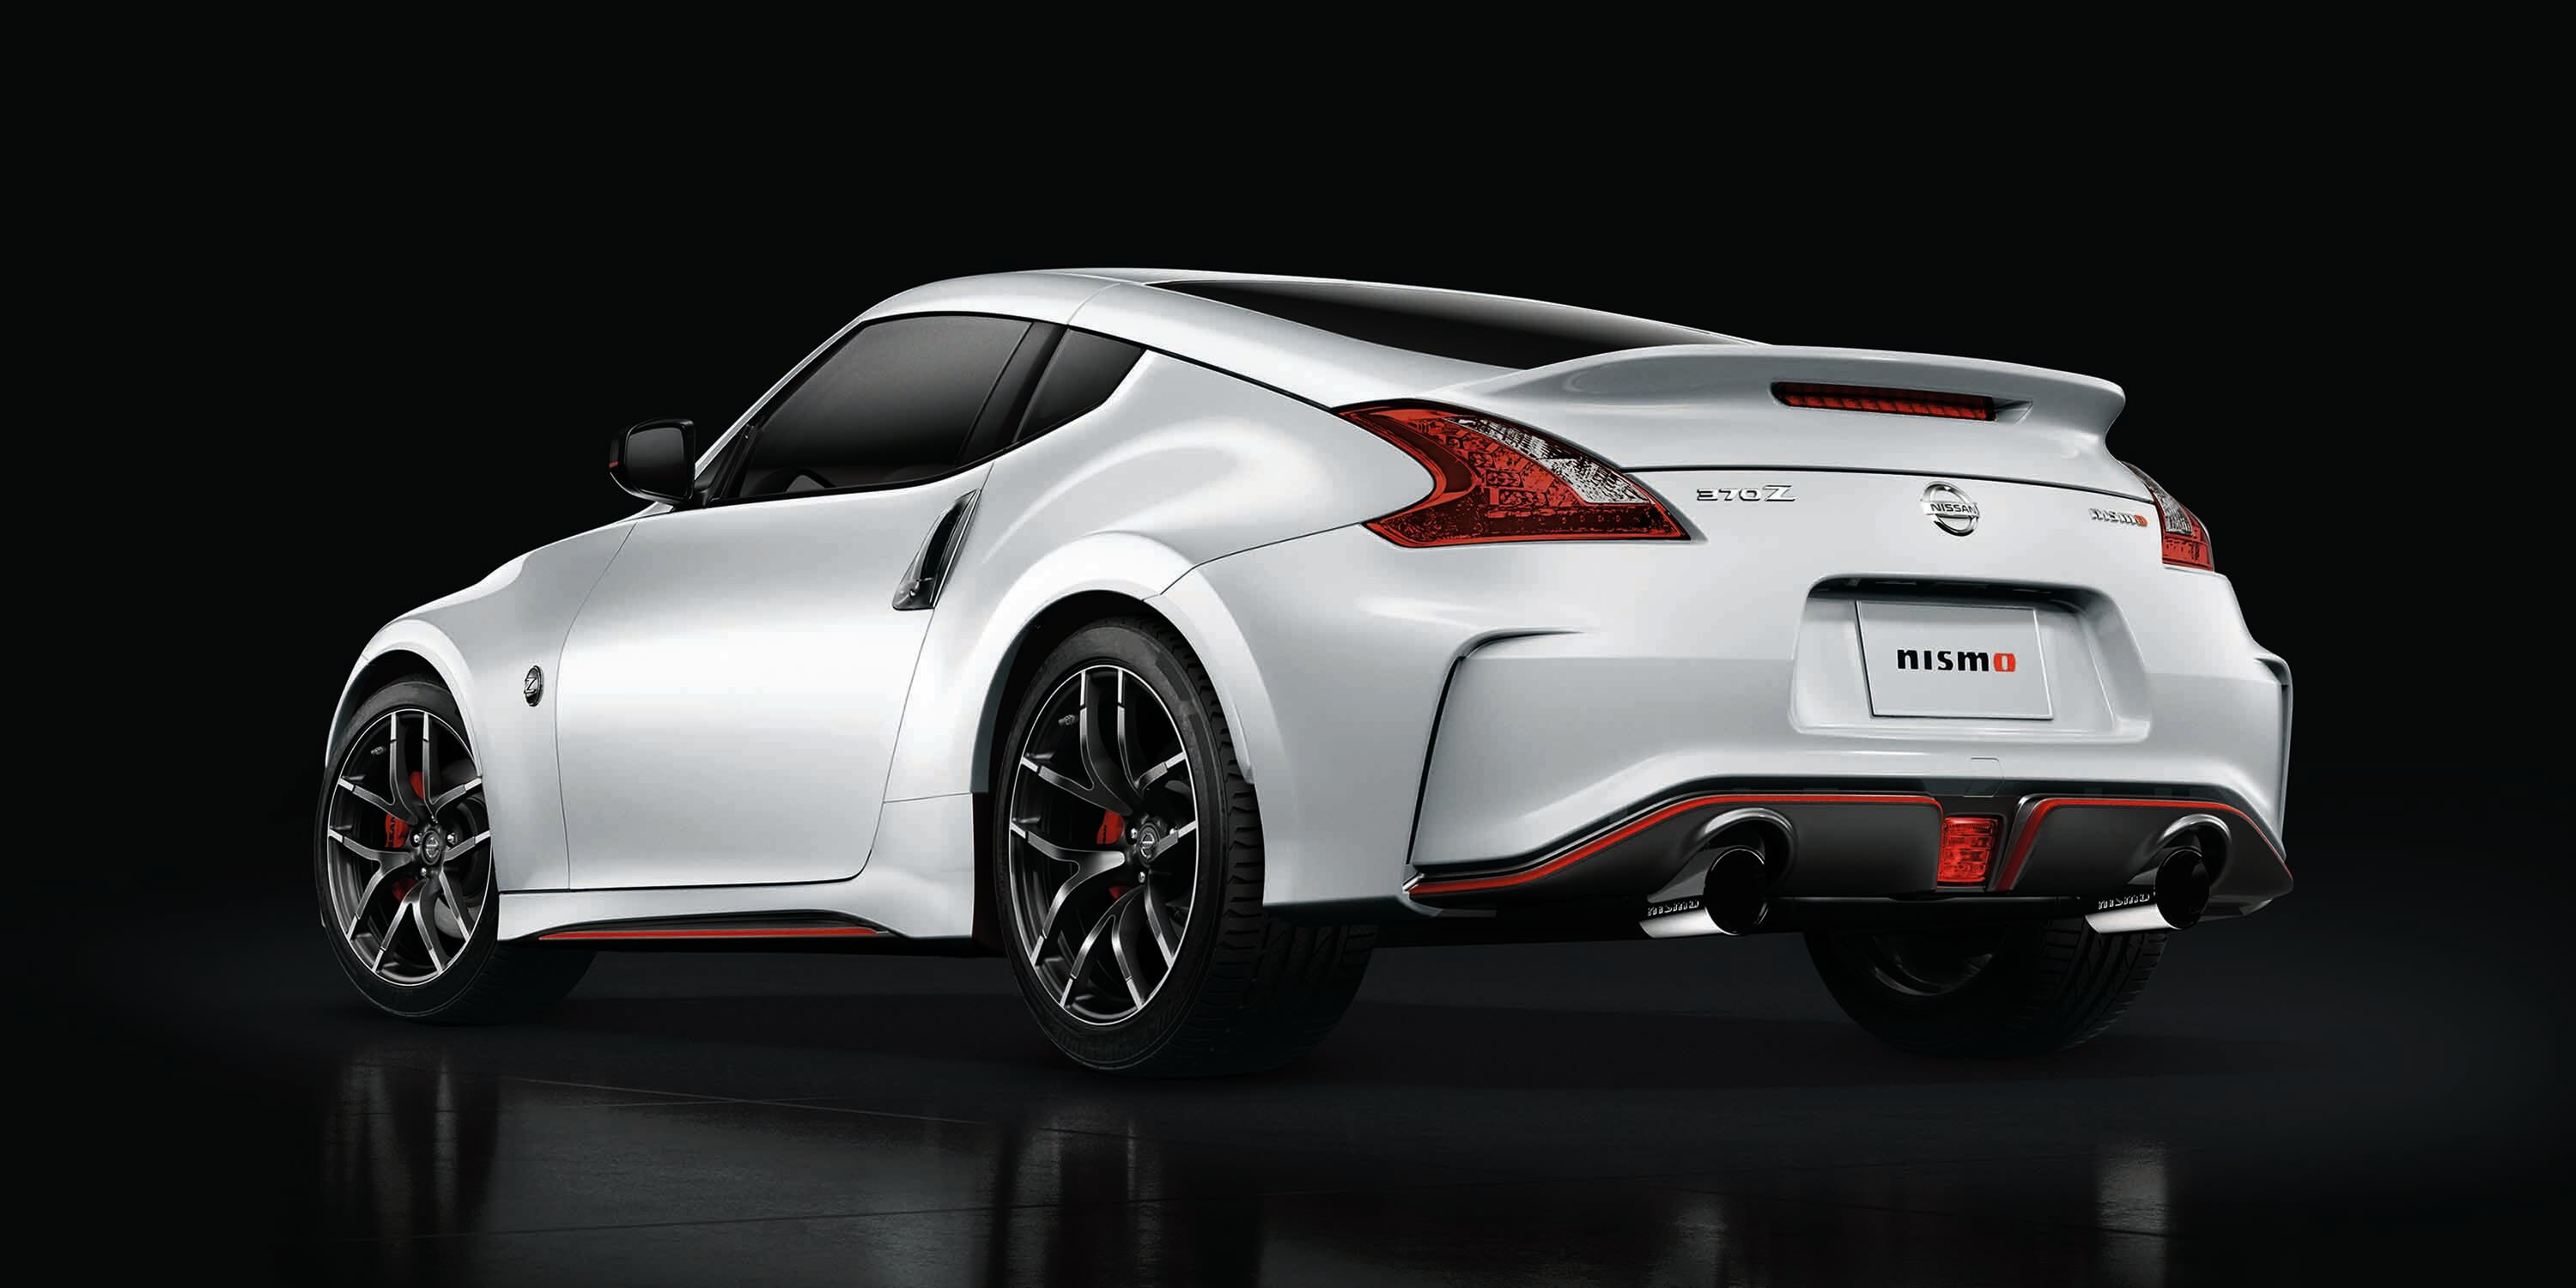 Nissan 370Z in showroom